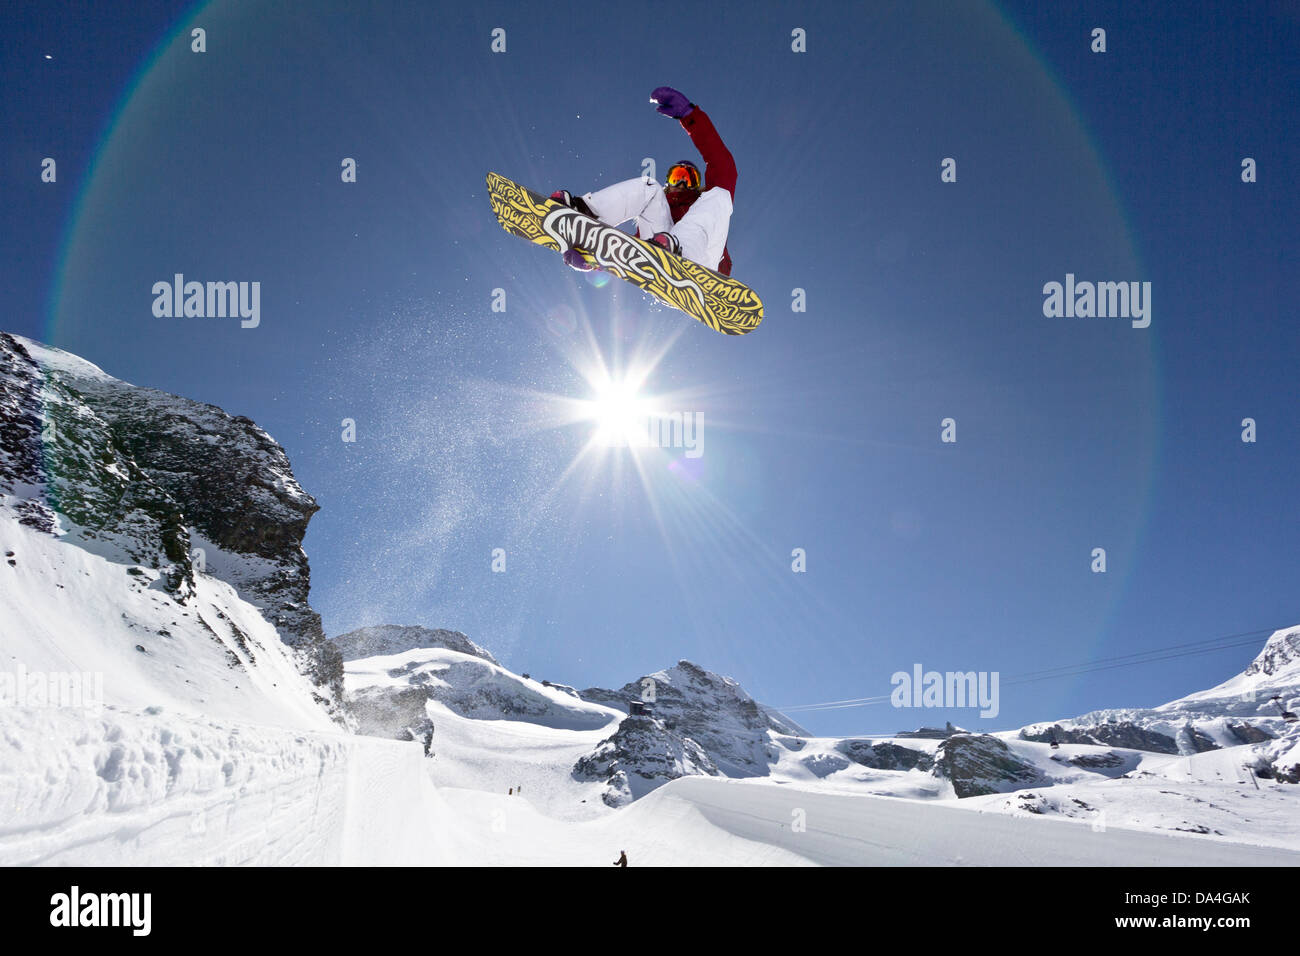 SAAS-FEE, VALAIS, SWITZERLAND. A female snowboarder riding the halfpipe with a stalefish trick. In the background - Stock Image